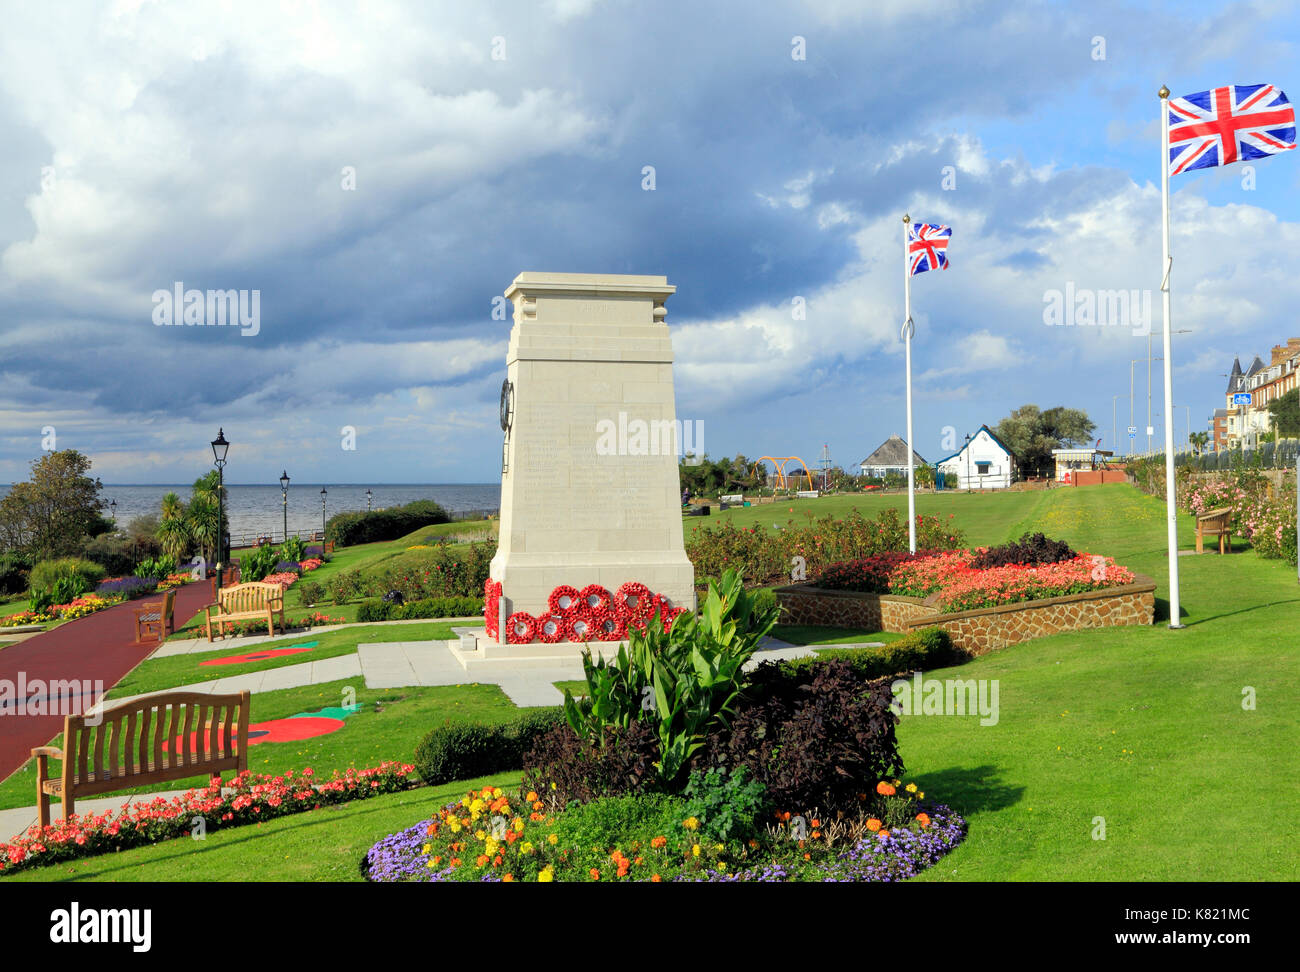 War Memorial, memorials, wreaths, poppies, Union Jack Flag,Flags, Esplanade Gardens, Hunstanton, Norfolk, England, UK, Remembrance - Stock Image